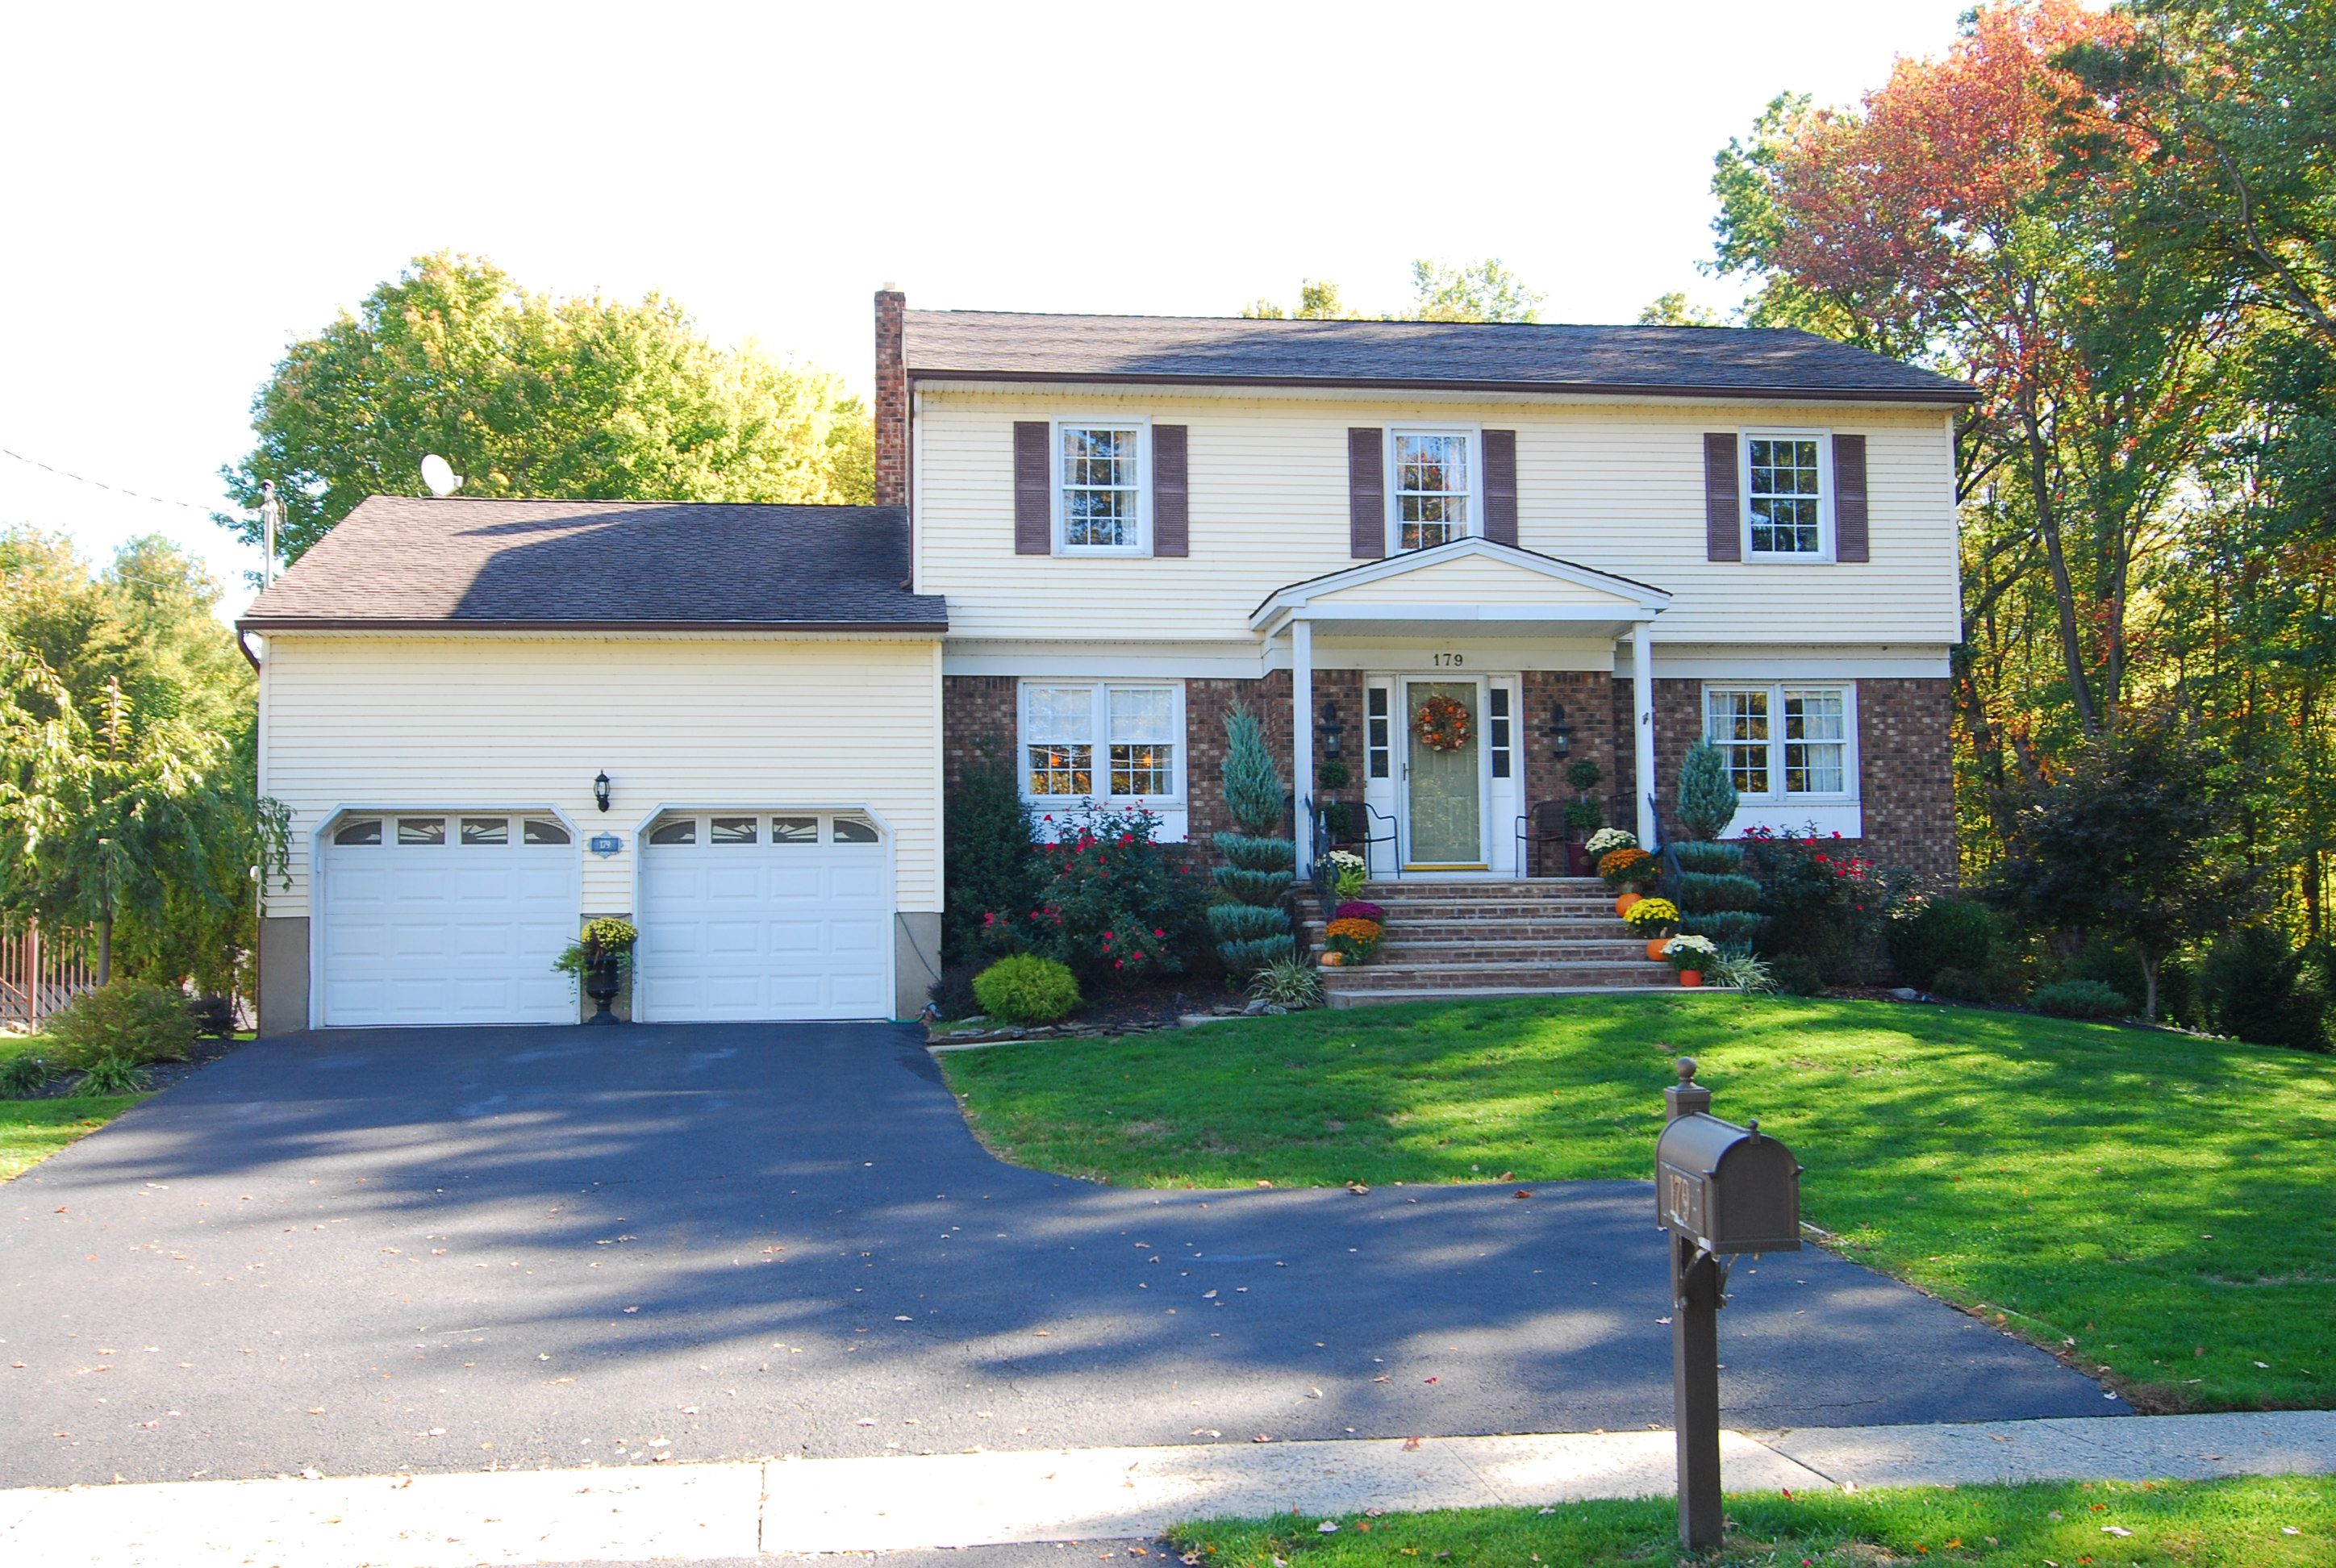 Sold - to 179 Edwards Road, Parsippany! Fill your heart with joy in this gorgeous 1980's Colonial that has been updated to perfection.